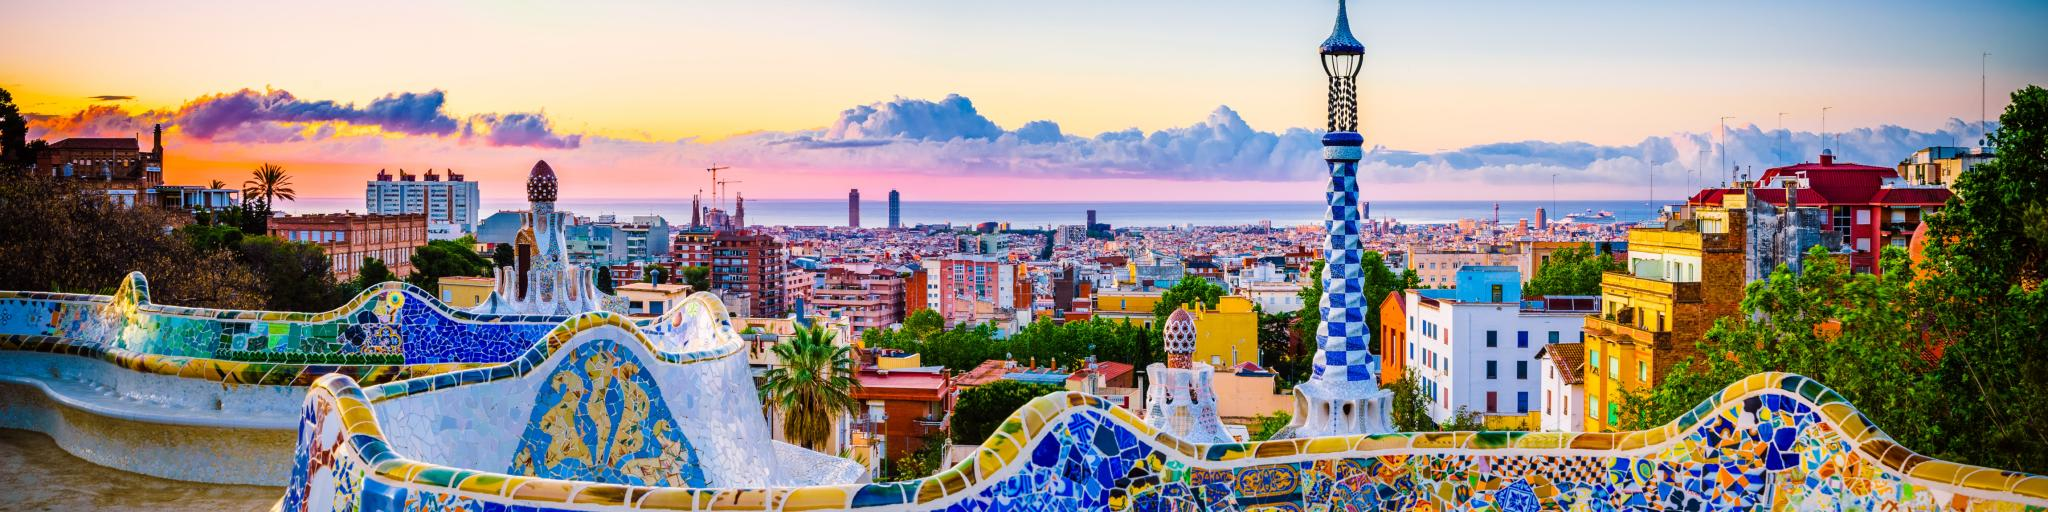 Barcelona at sunrise viewed from park Guell